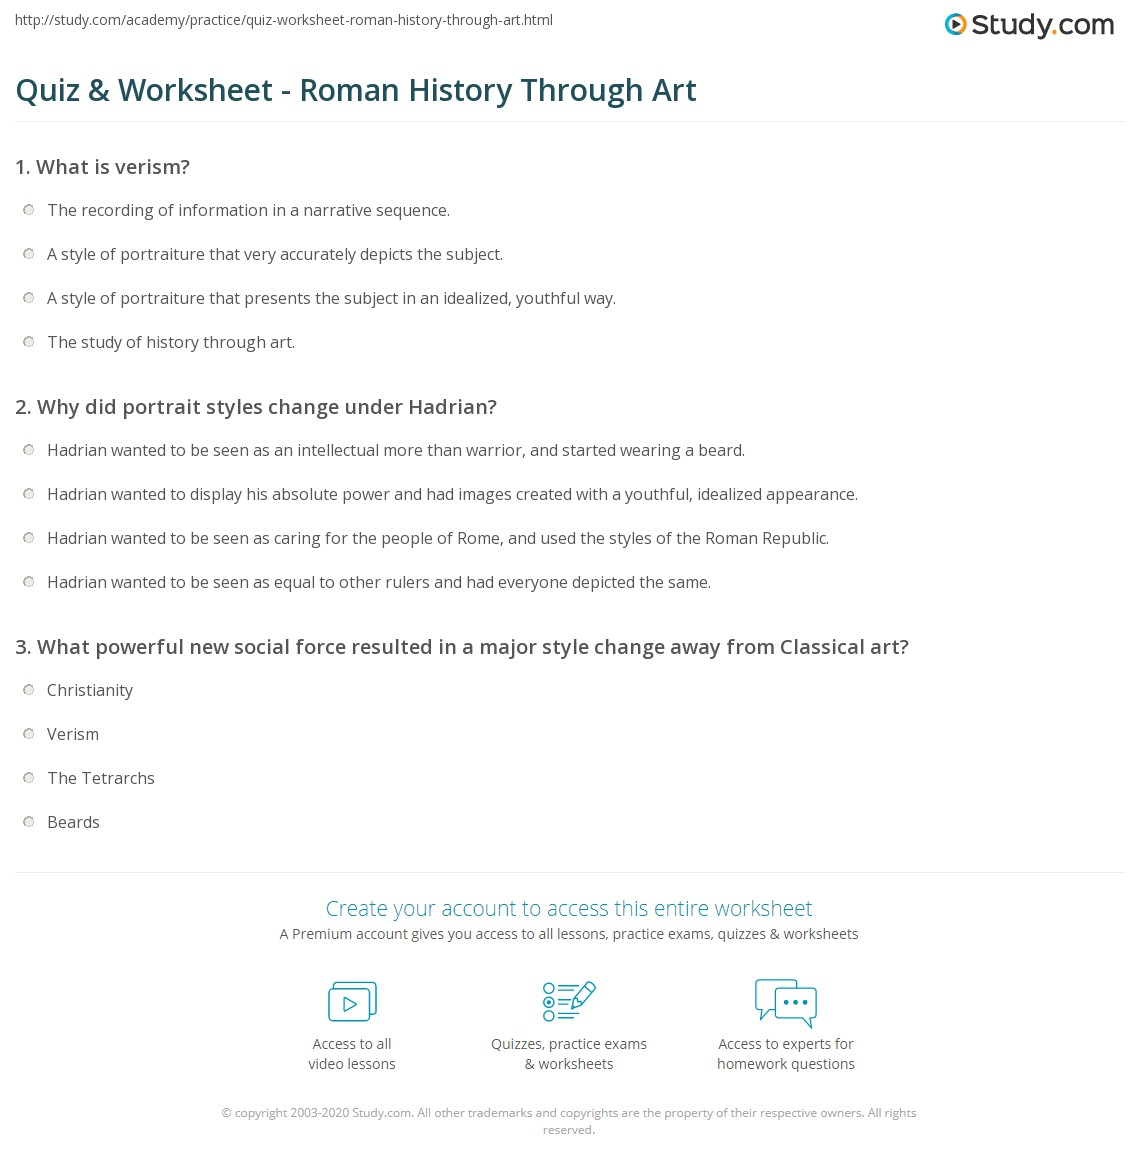 Answers To Art History Questions